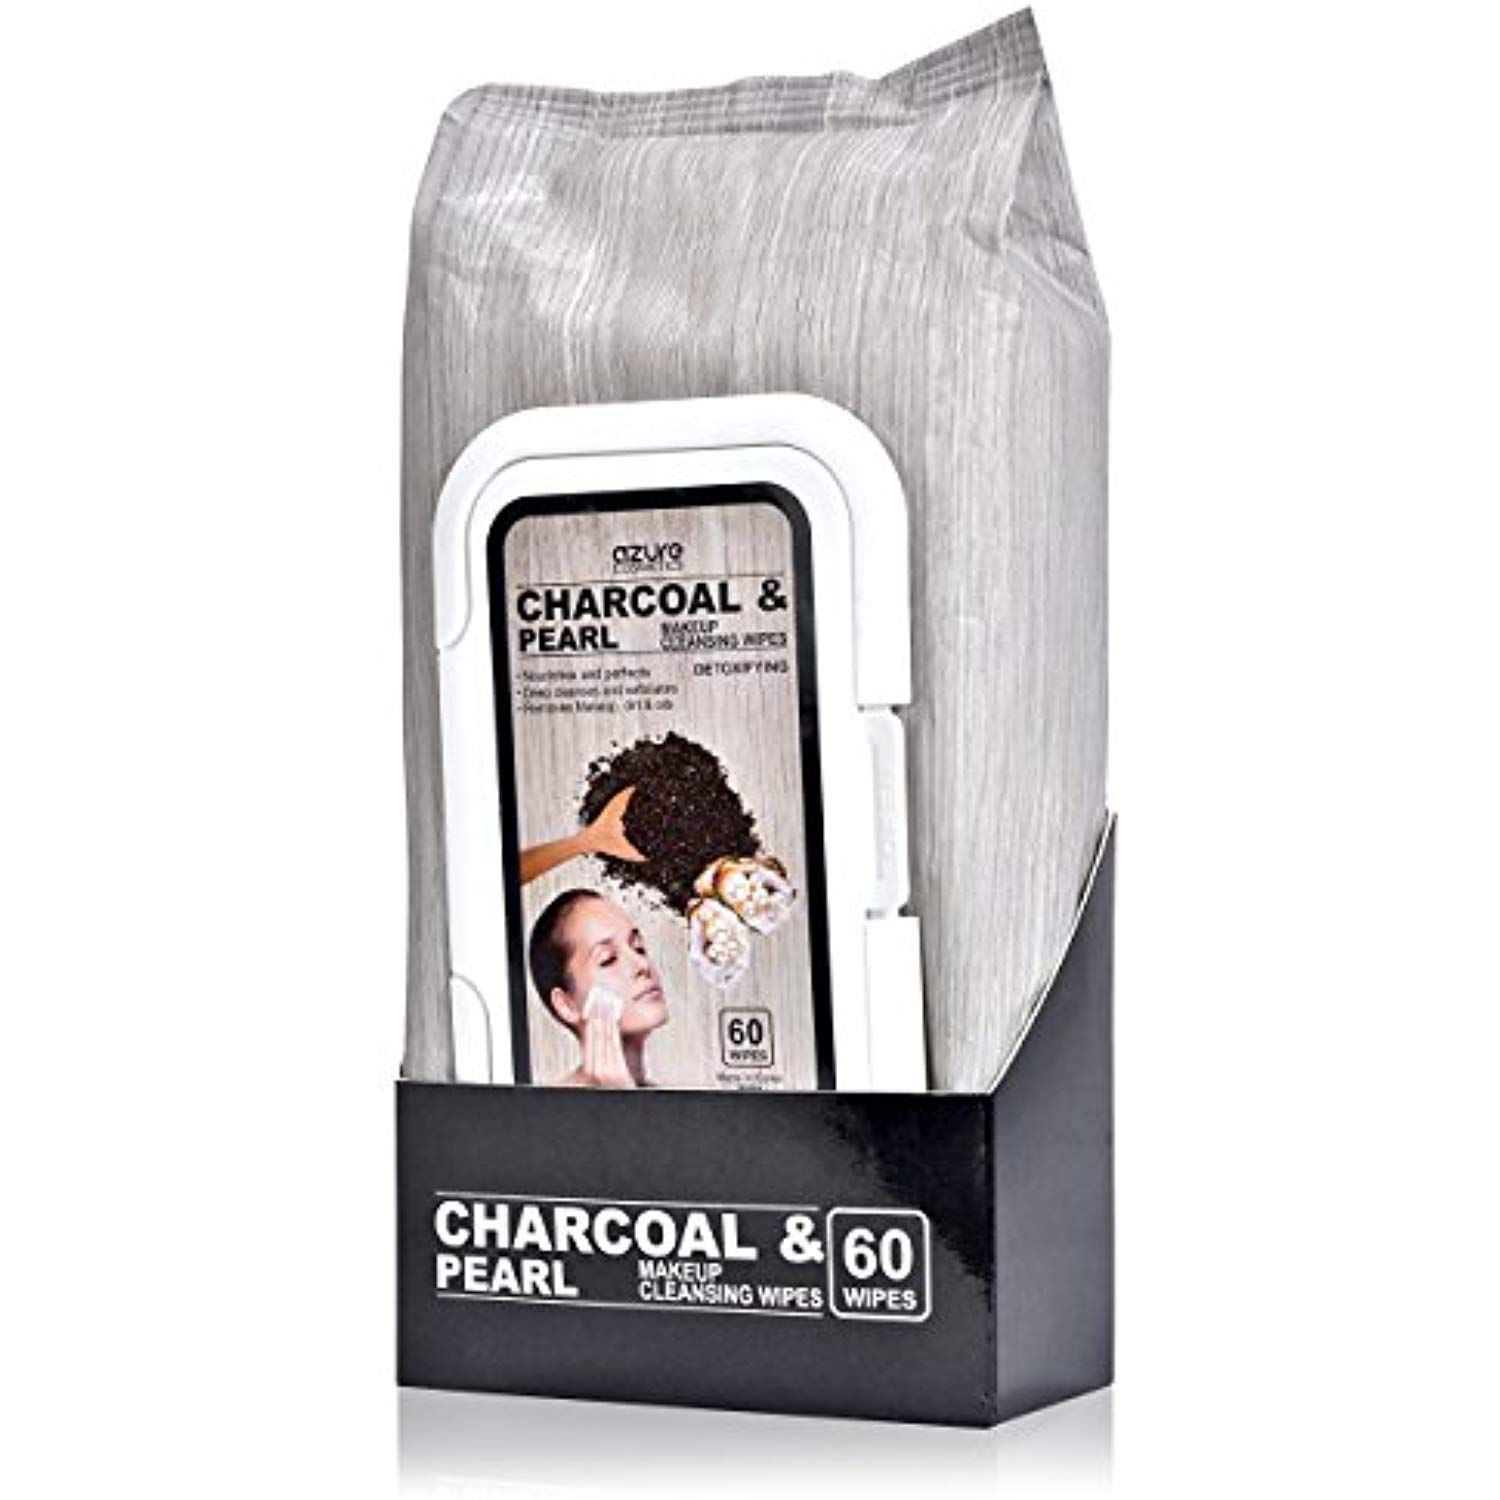 Charcoal and Pearl Detoxifying Facial Wipes – Removes